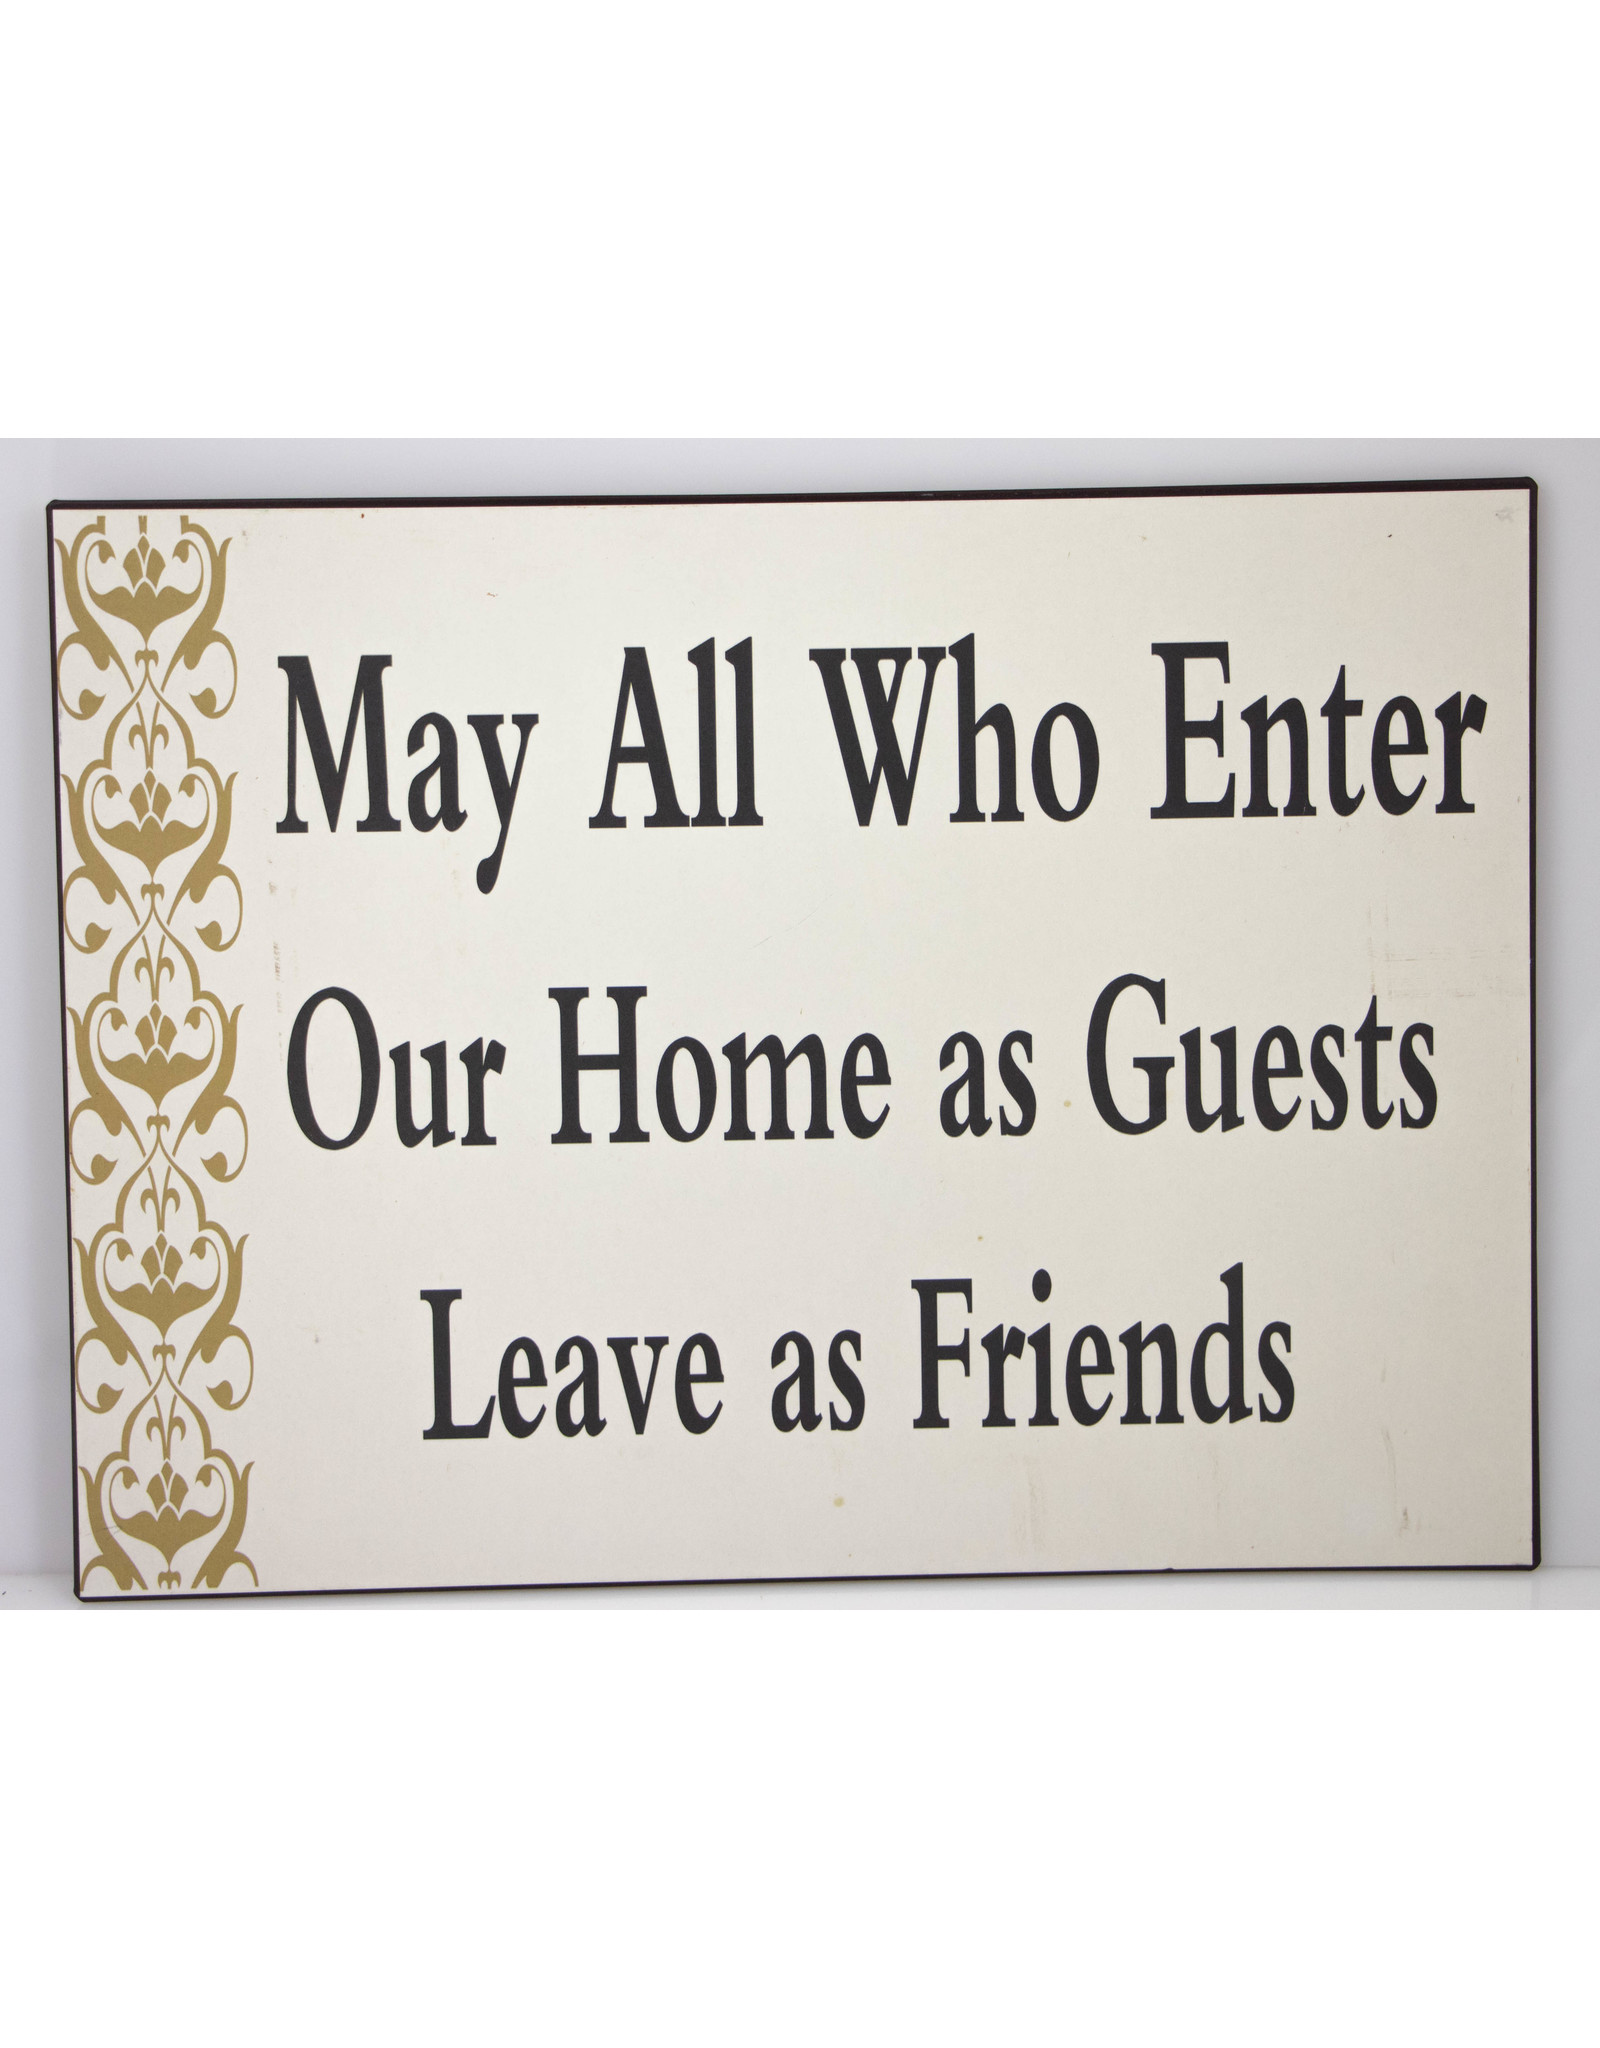 May all who enter...